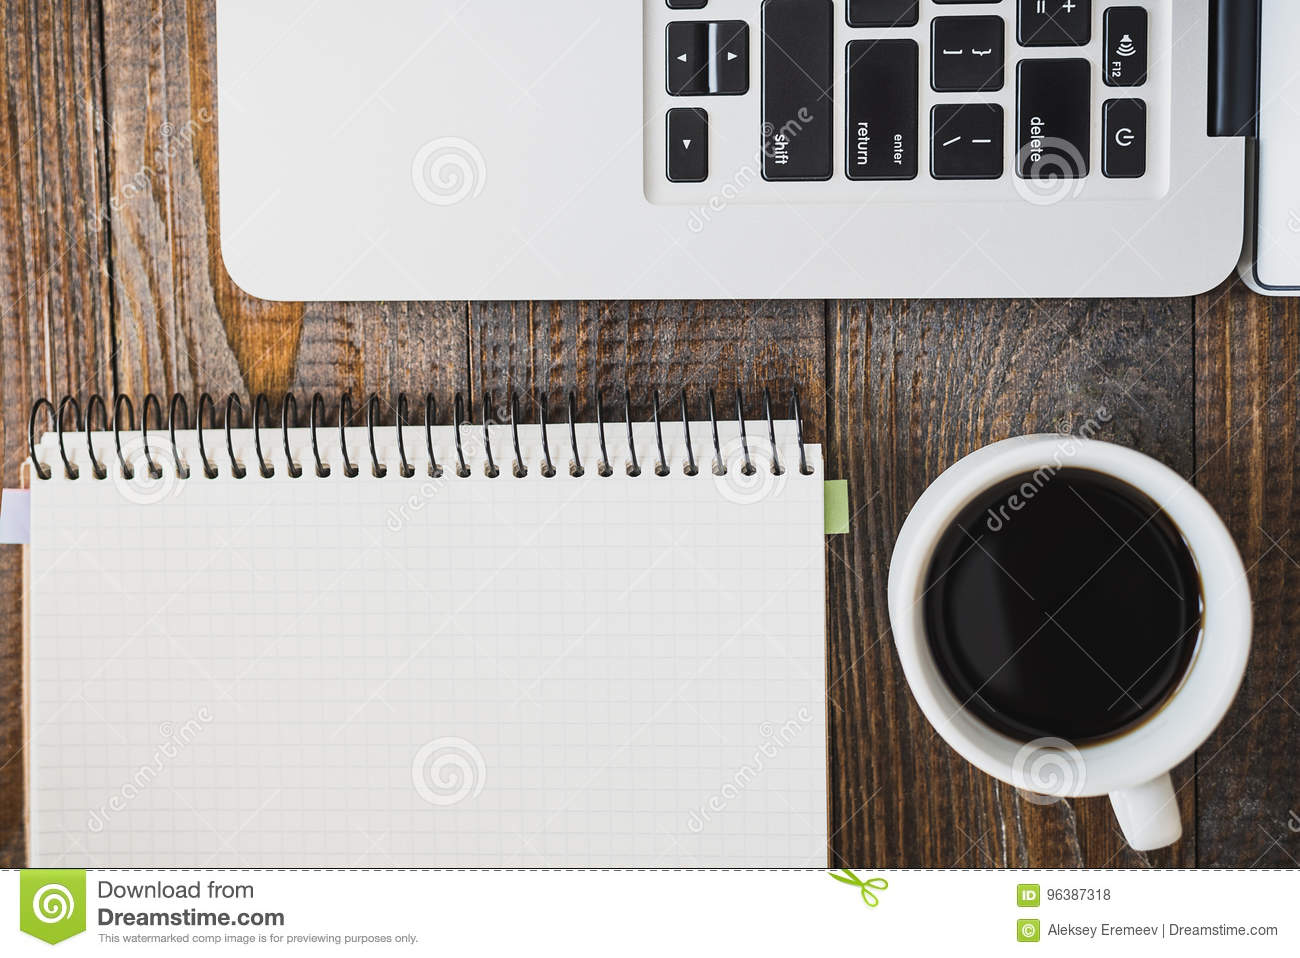 Laptop, a cup of coffee and a notebook lie on a wooden table. Horizontal frame